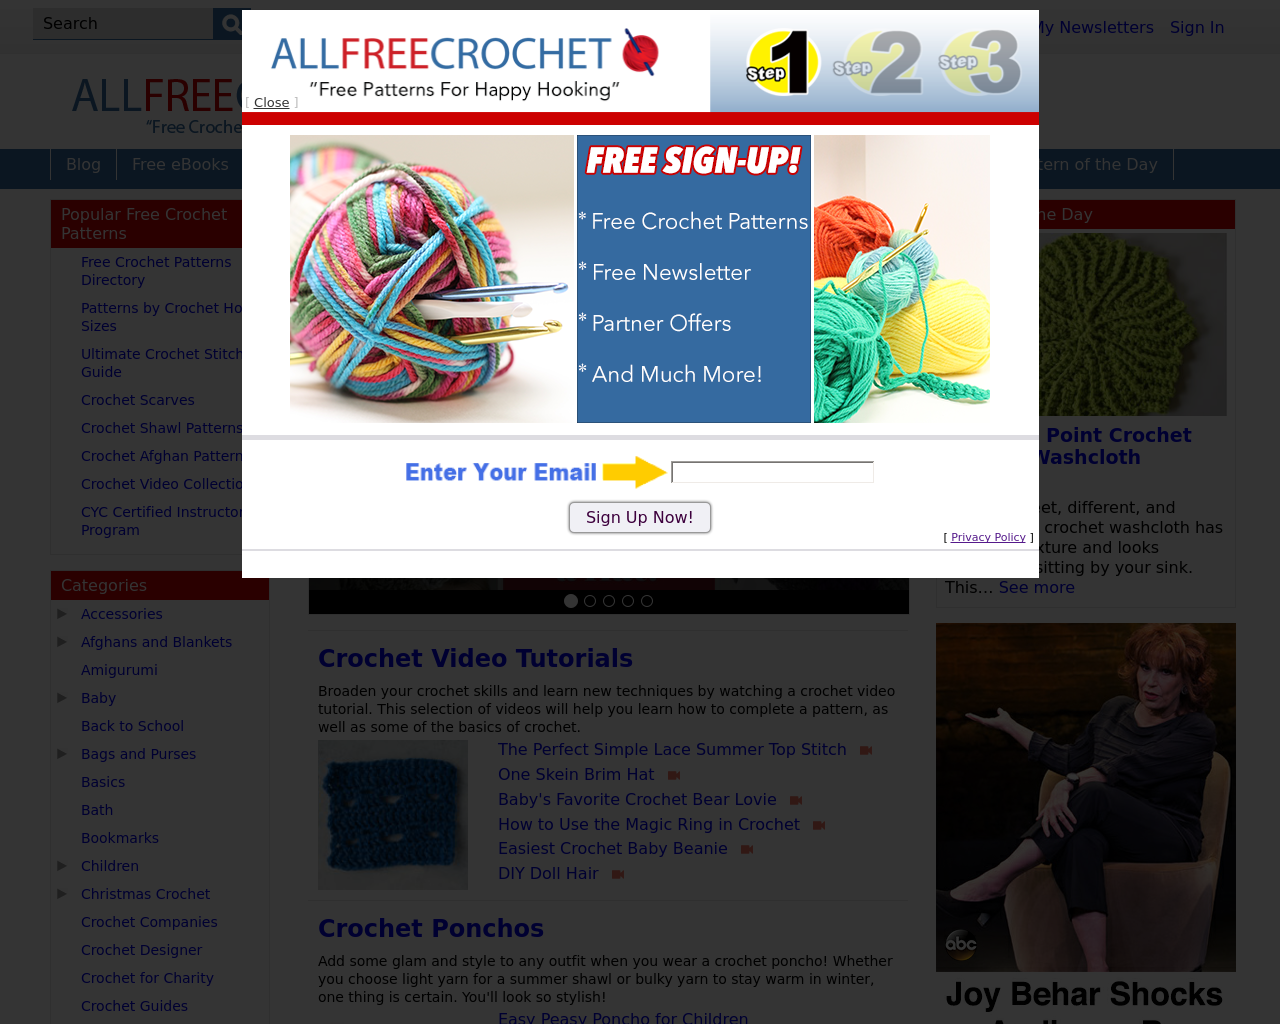 All-Free-Crochet-Advertising-Reviews-Pricing